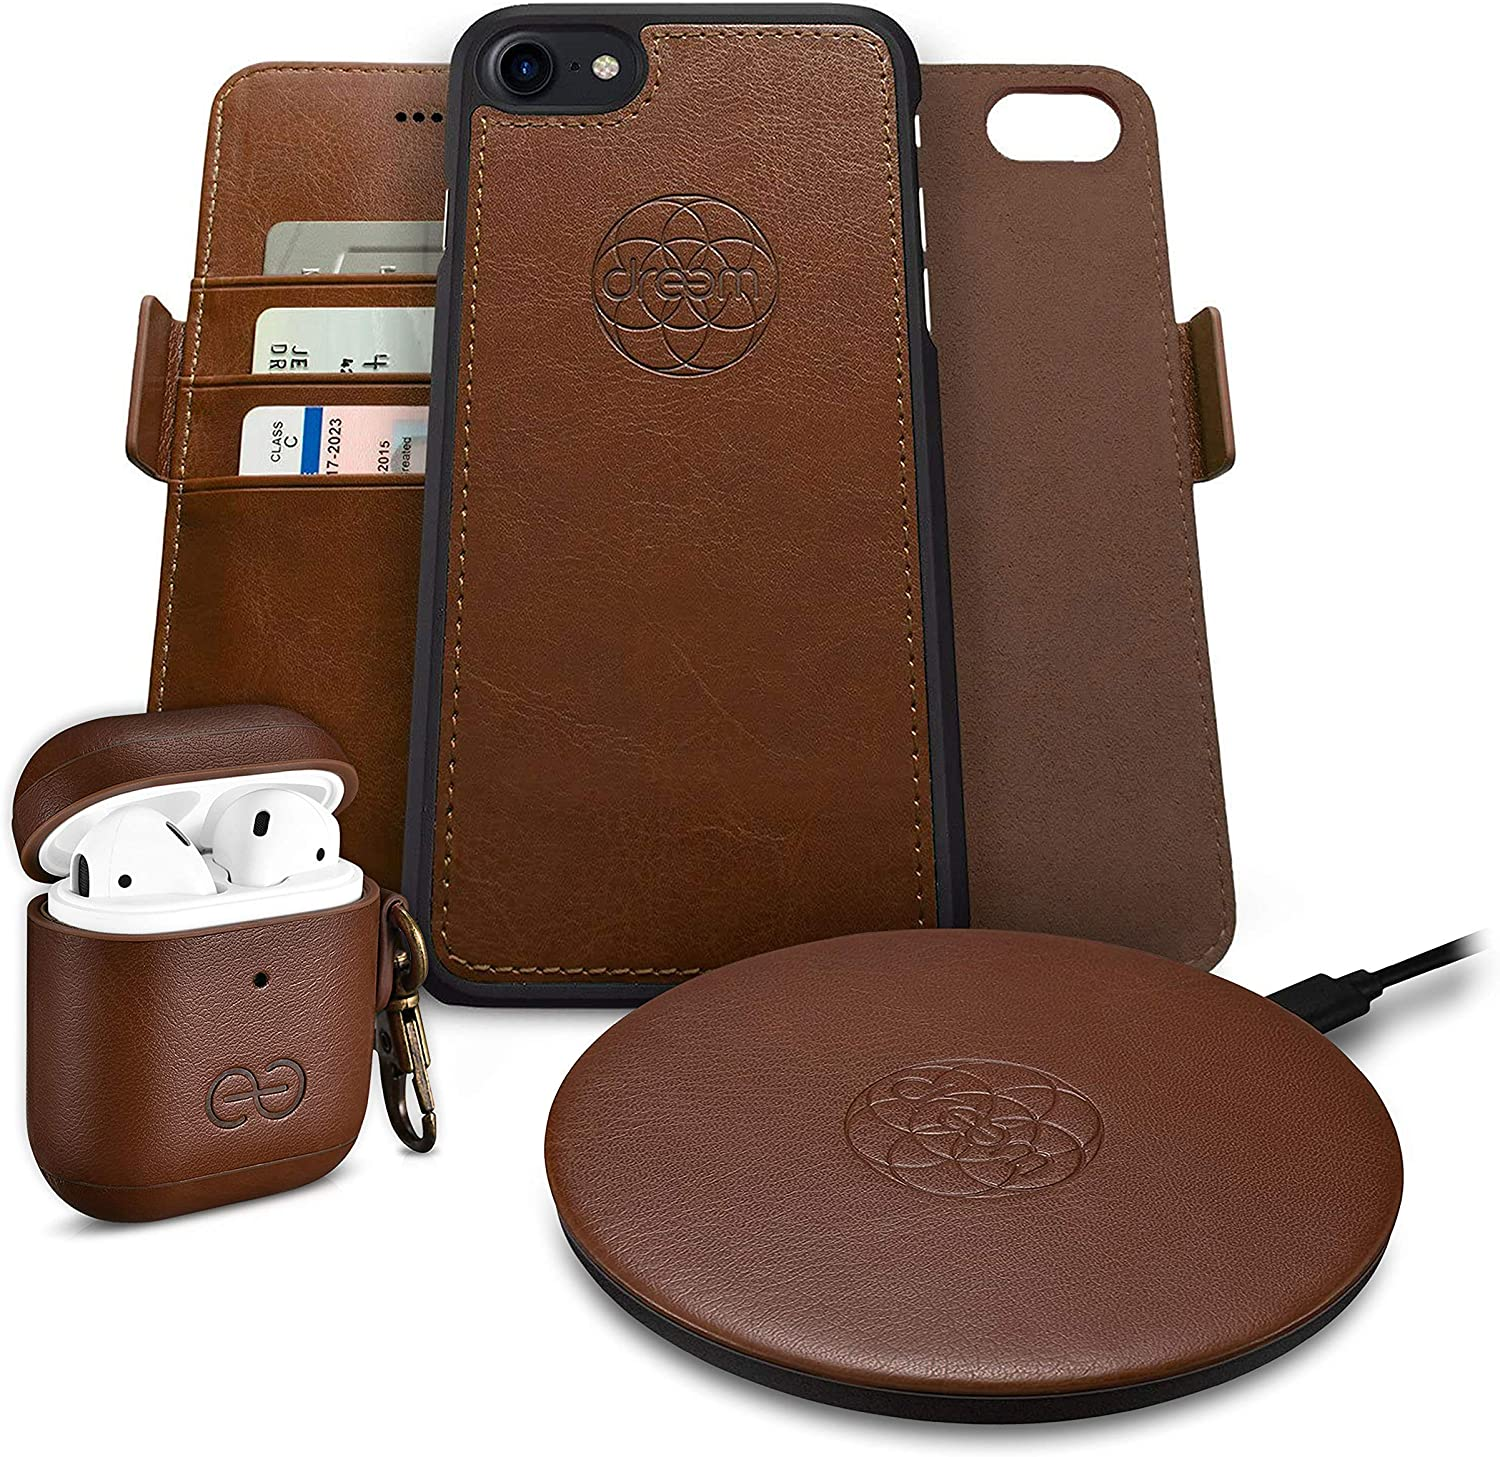 Dreem Bundle: Fibonacci Wallet-Case for iPhone SE 2020 8/7 with Om AirPods 1 & 2 Case Cover and Beam Wireless Charger - Chocolate